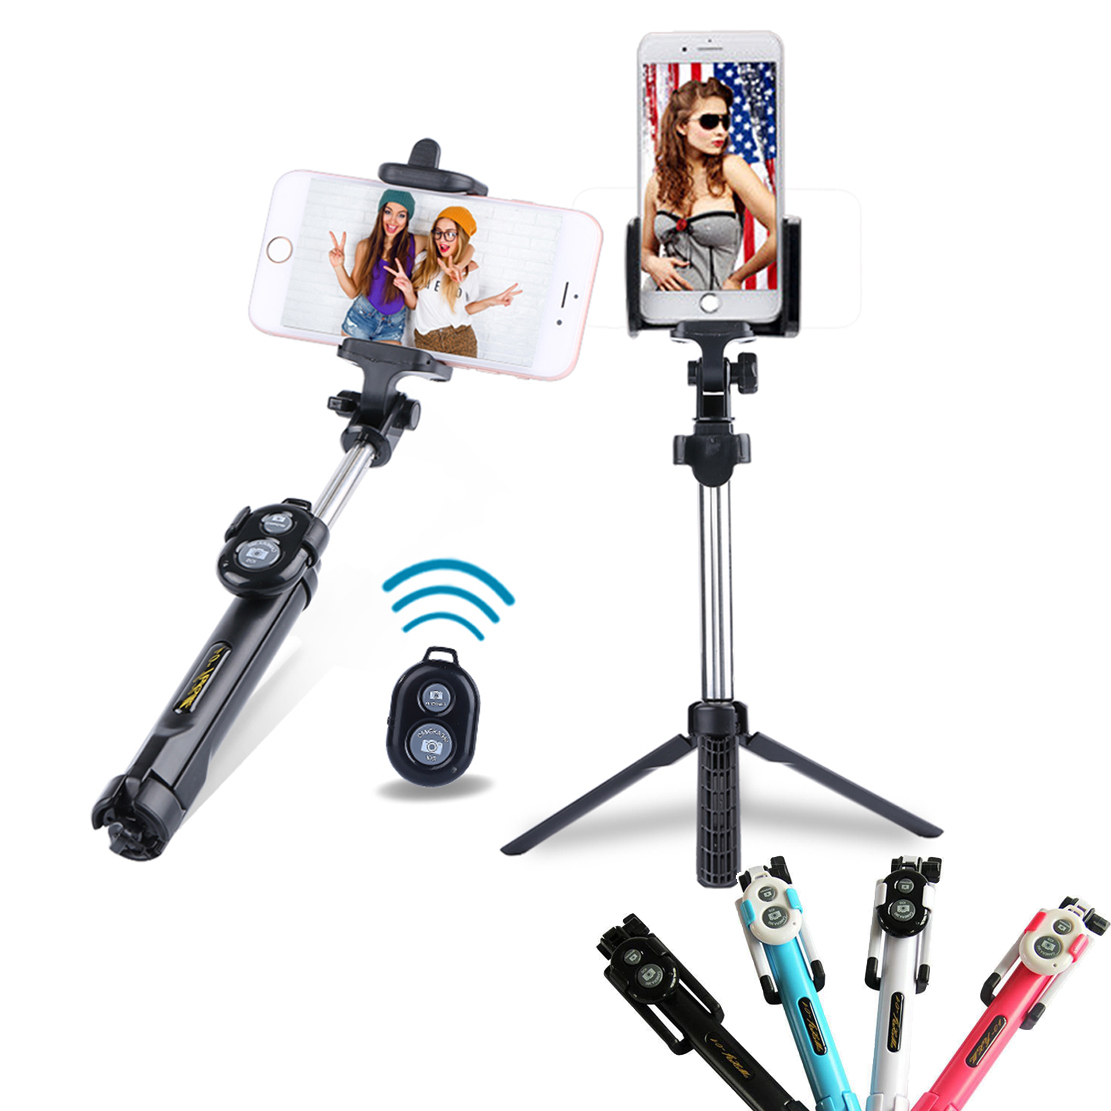 Universal Handheld mini Tripod Monopod Selfie Stick Portrait Bluetooth Remote Shutter for iPhone Sumsang HTC LG Huawei Xiaomi health monitoring bluetooth sync children s adults smart watch phone for iphone samsung huawei lg htc xiaomi so on smartphone